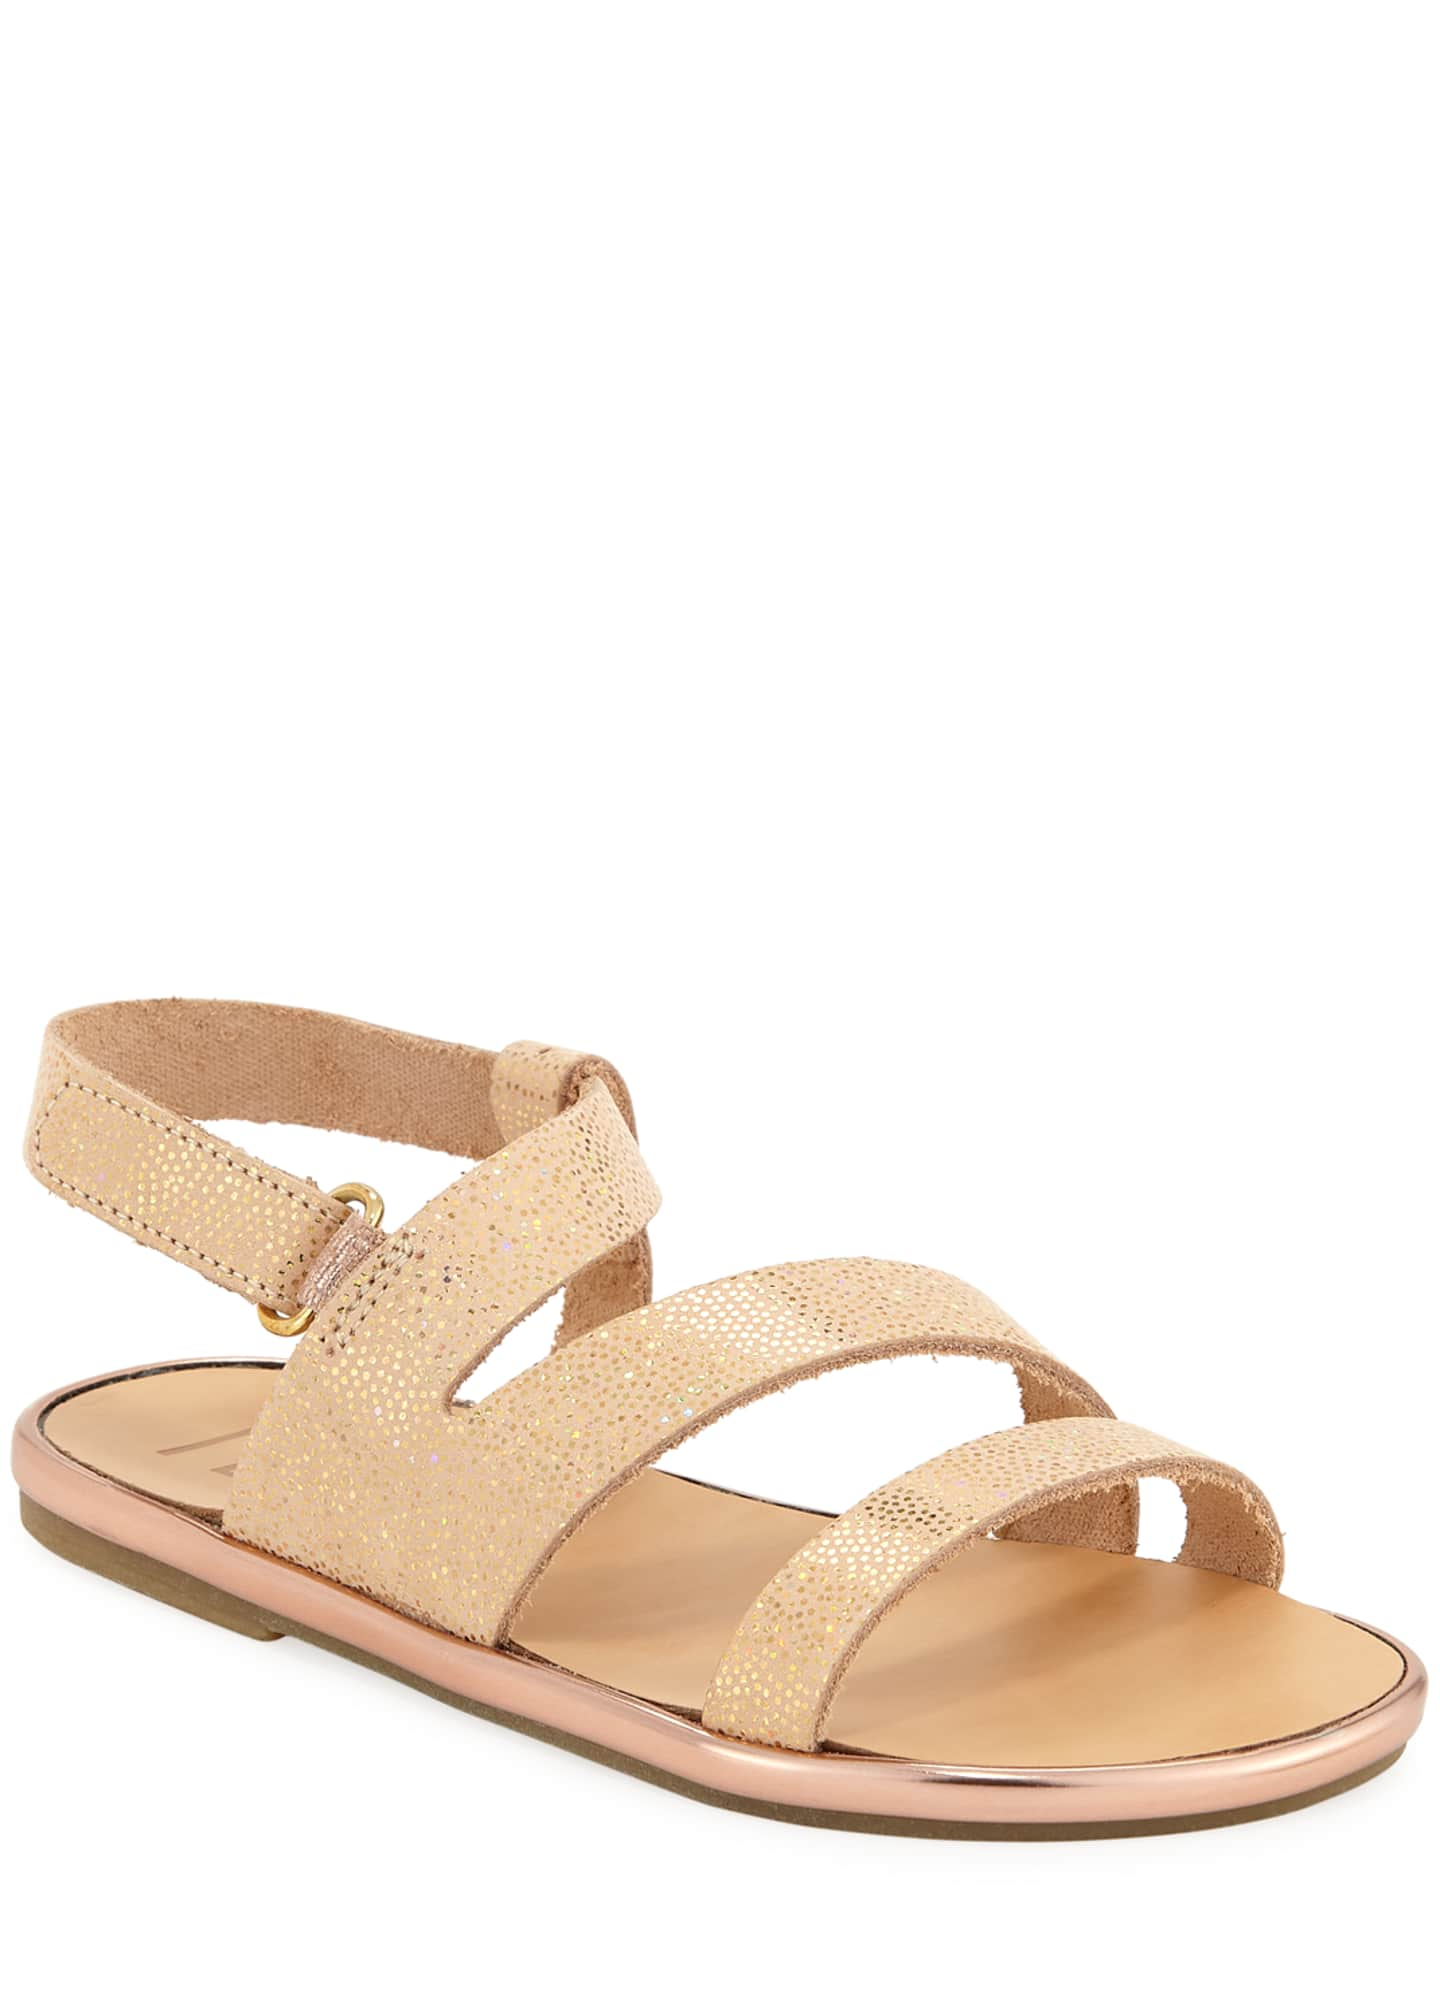 Metallic Leather Sandal, Toddler